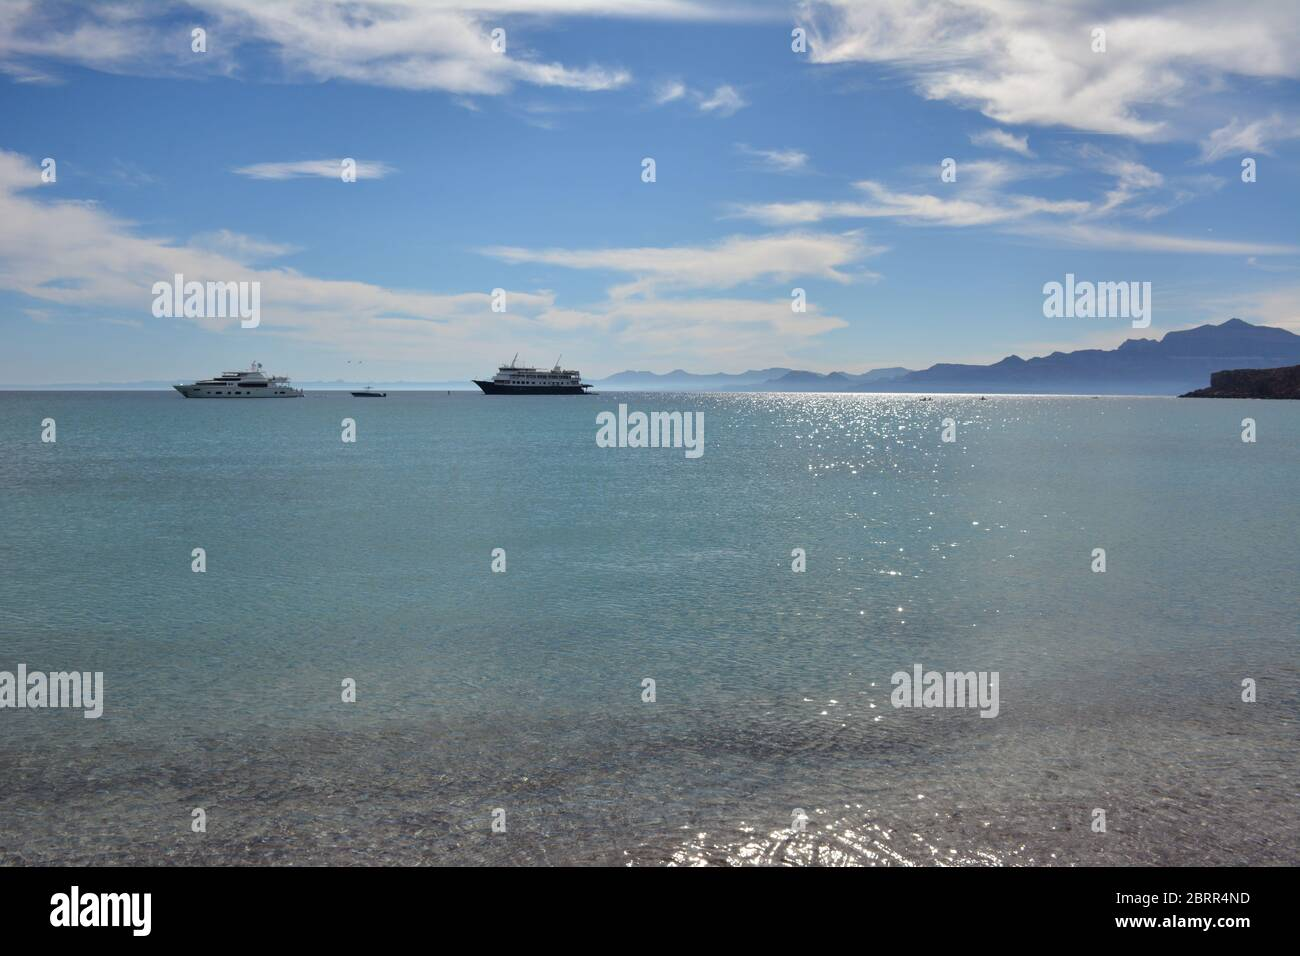 Clear glittering sea with a cruise ship and yacht in the background at Isla San Francisco, Sea of Cortez, Baja California Sur, Mexico. Stock Photo